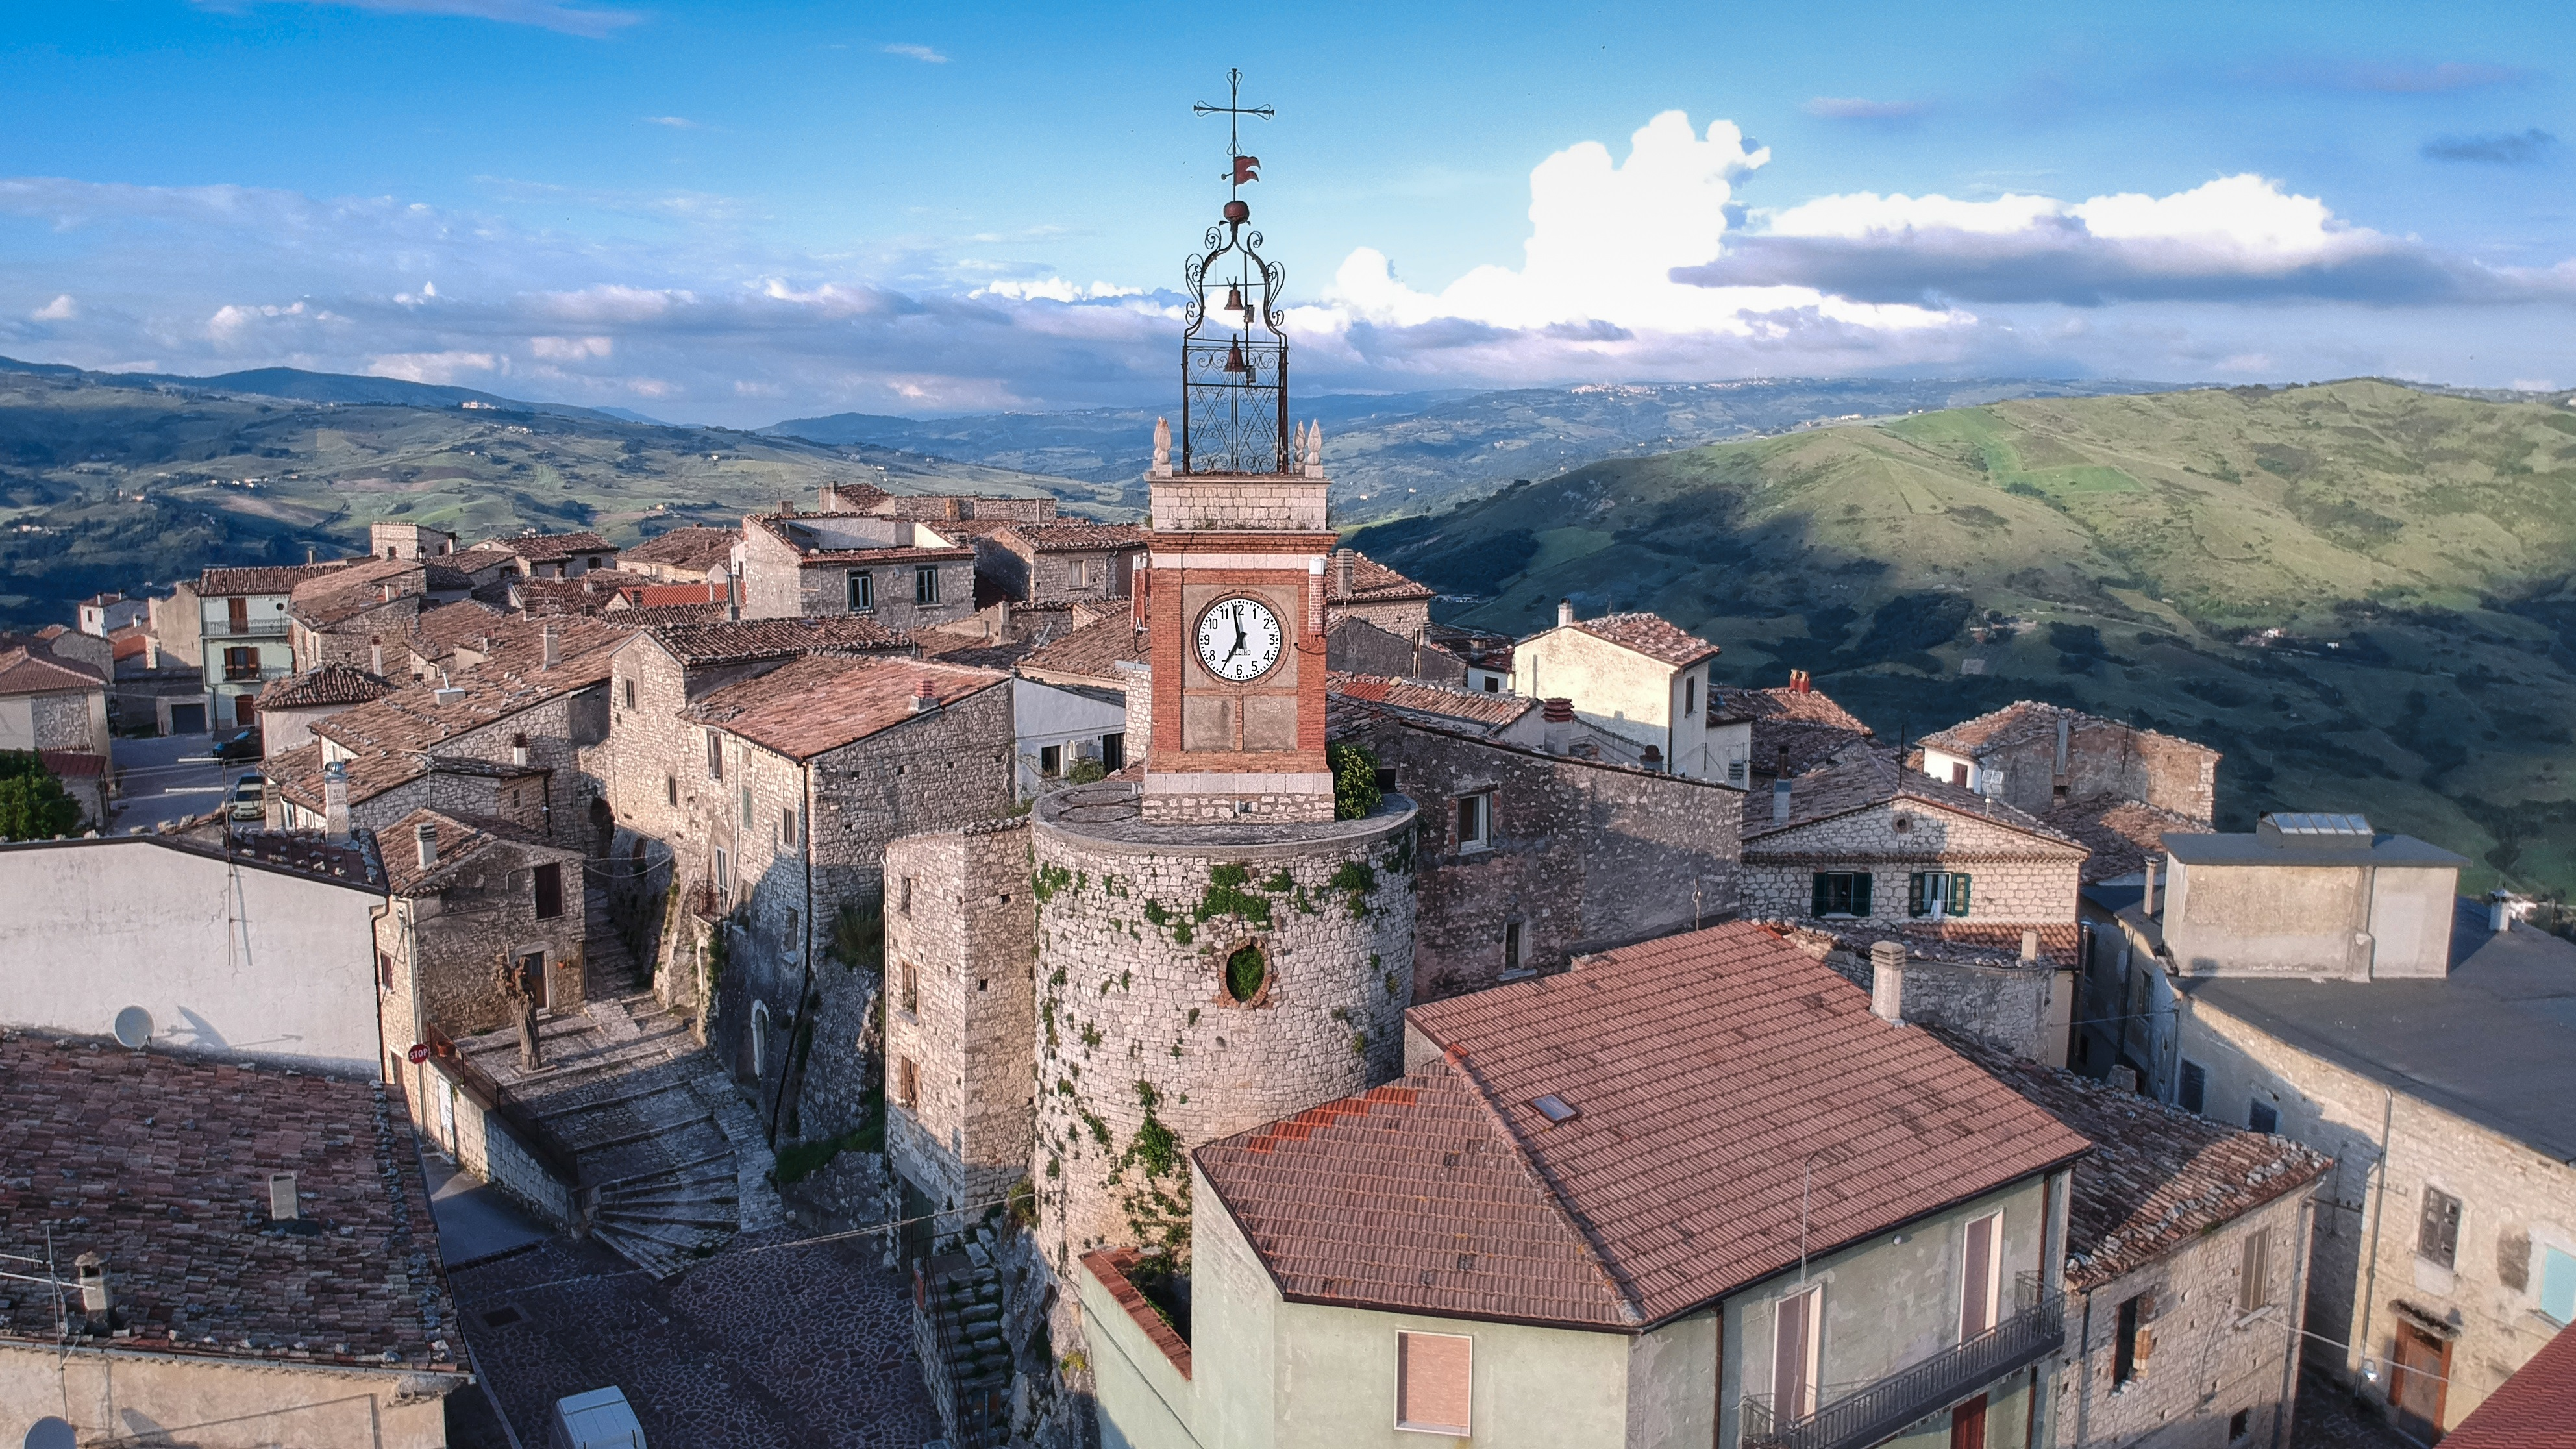 Castropignano The Italian Village Selling 1 Houses Cnn Travel